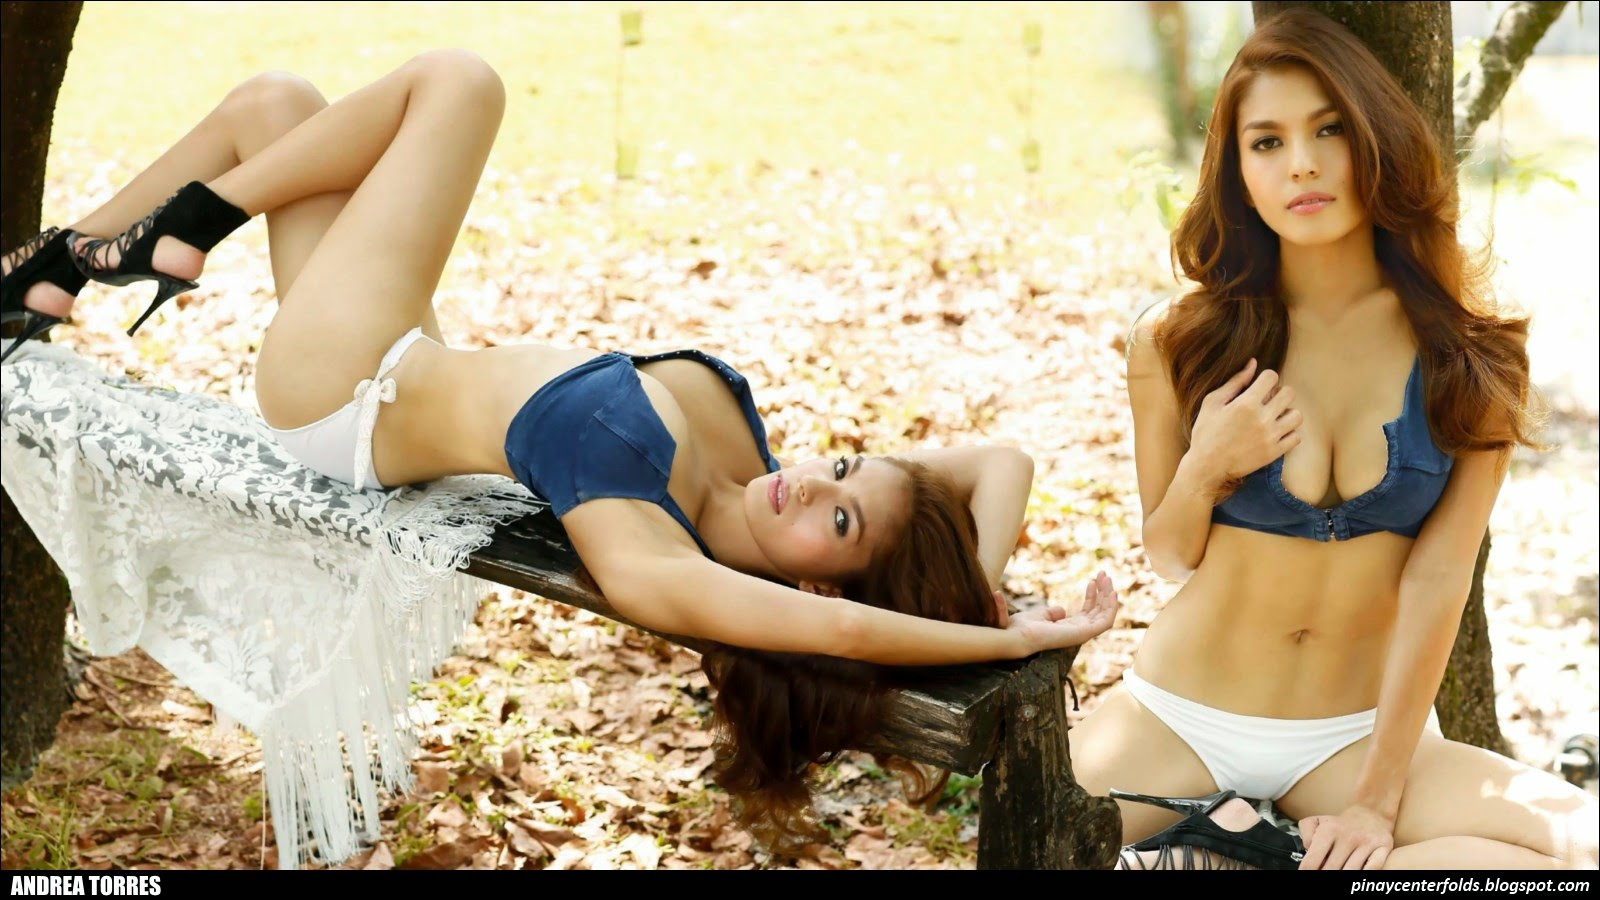 Andrea Torres Nude Pics andrea torres in fhm philippines december 2014